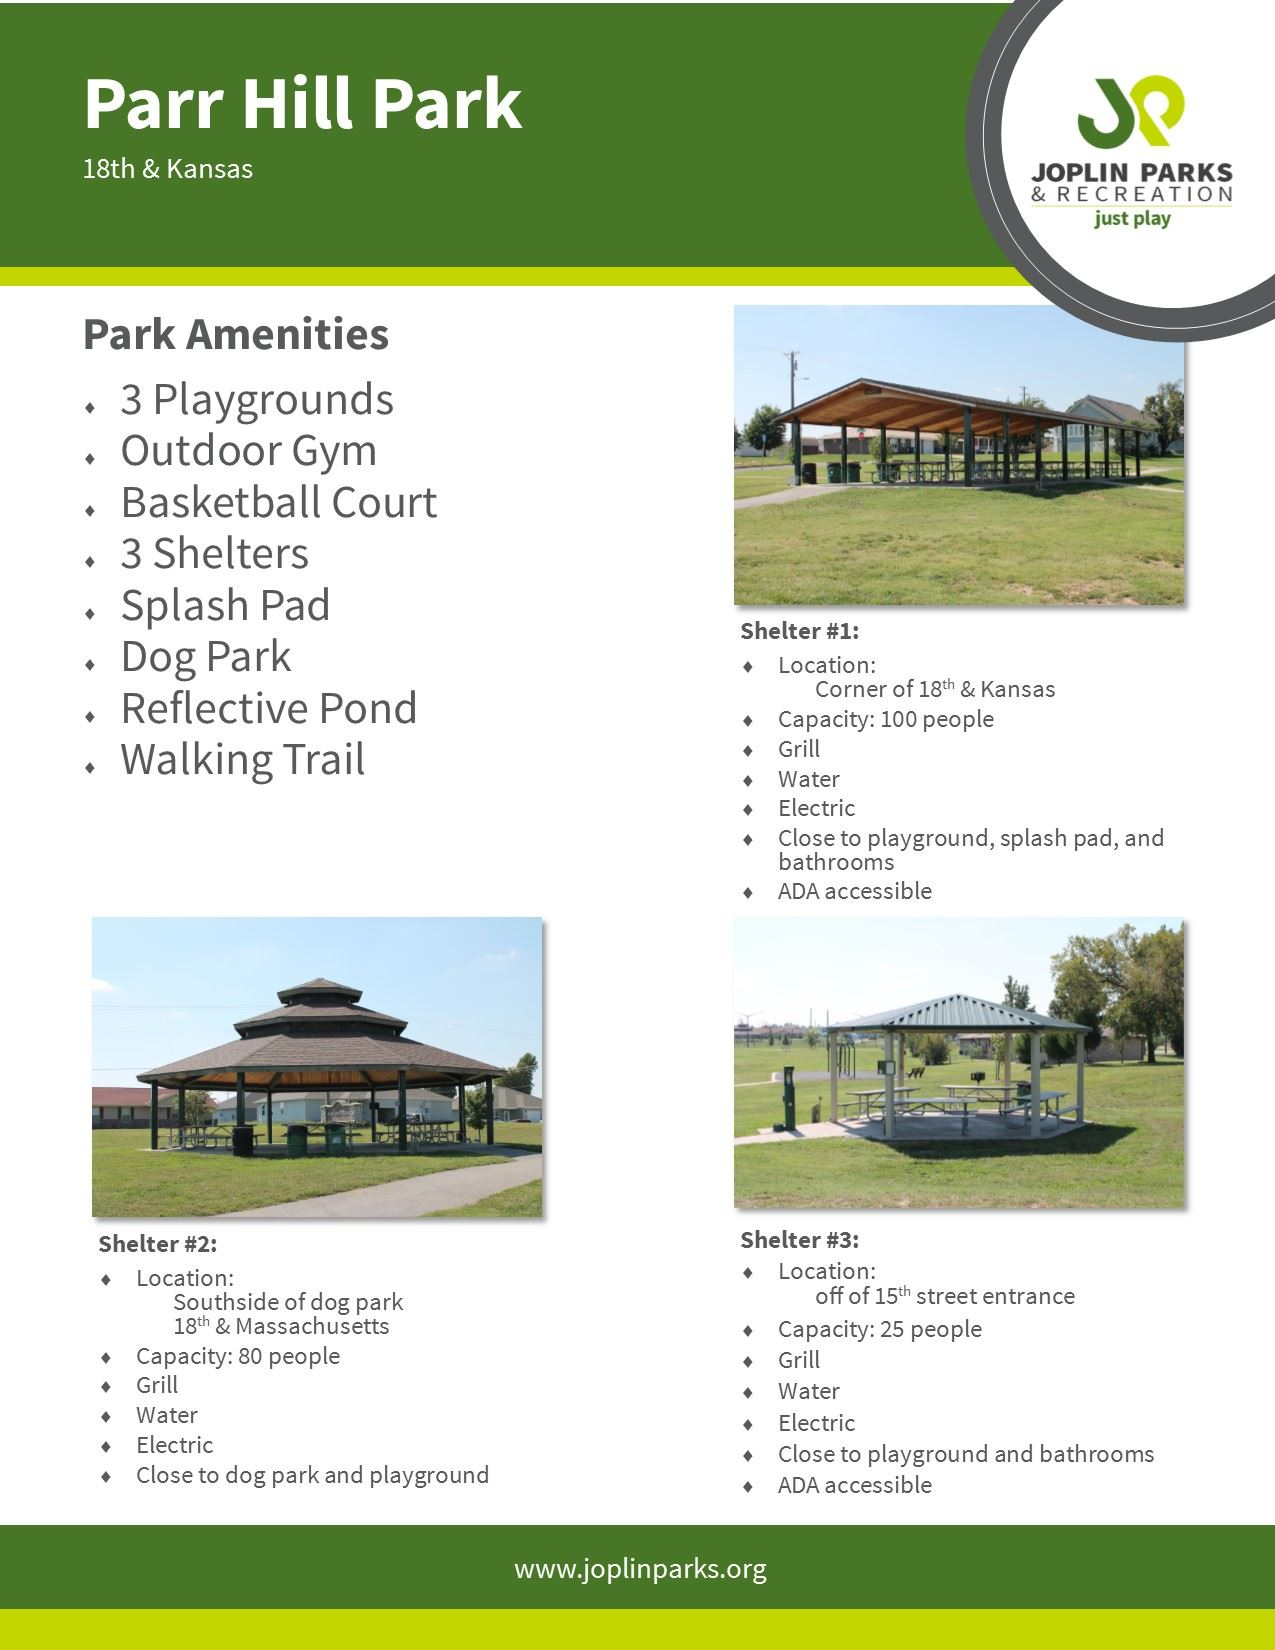 Parr Hill Park Fact Sheet